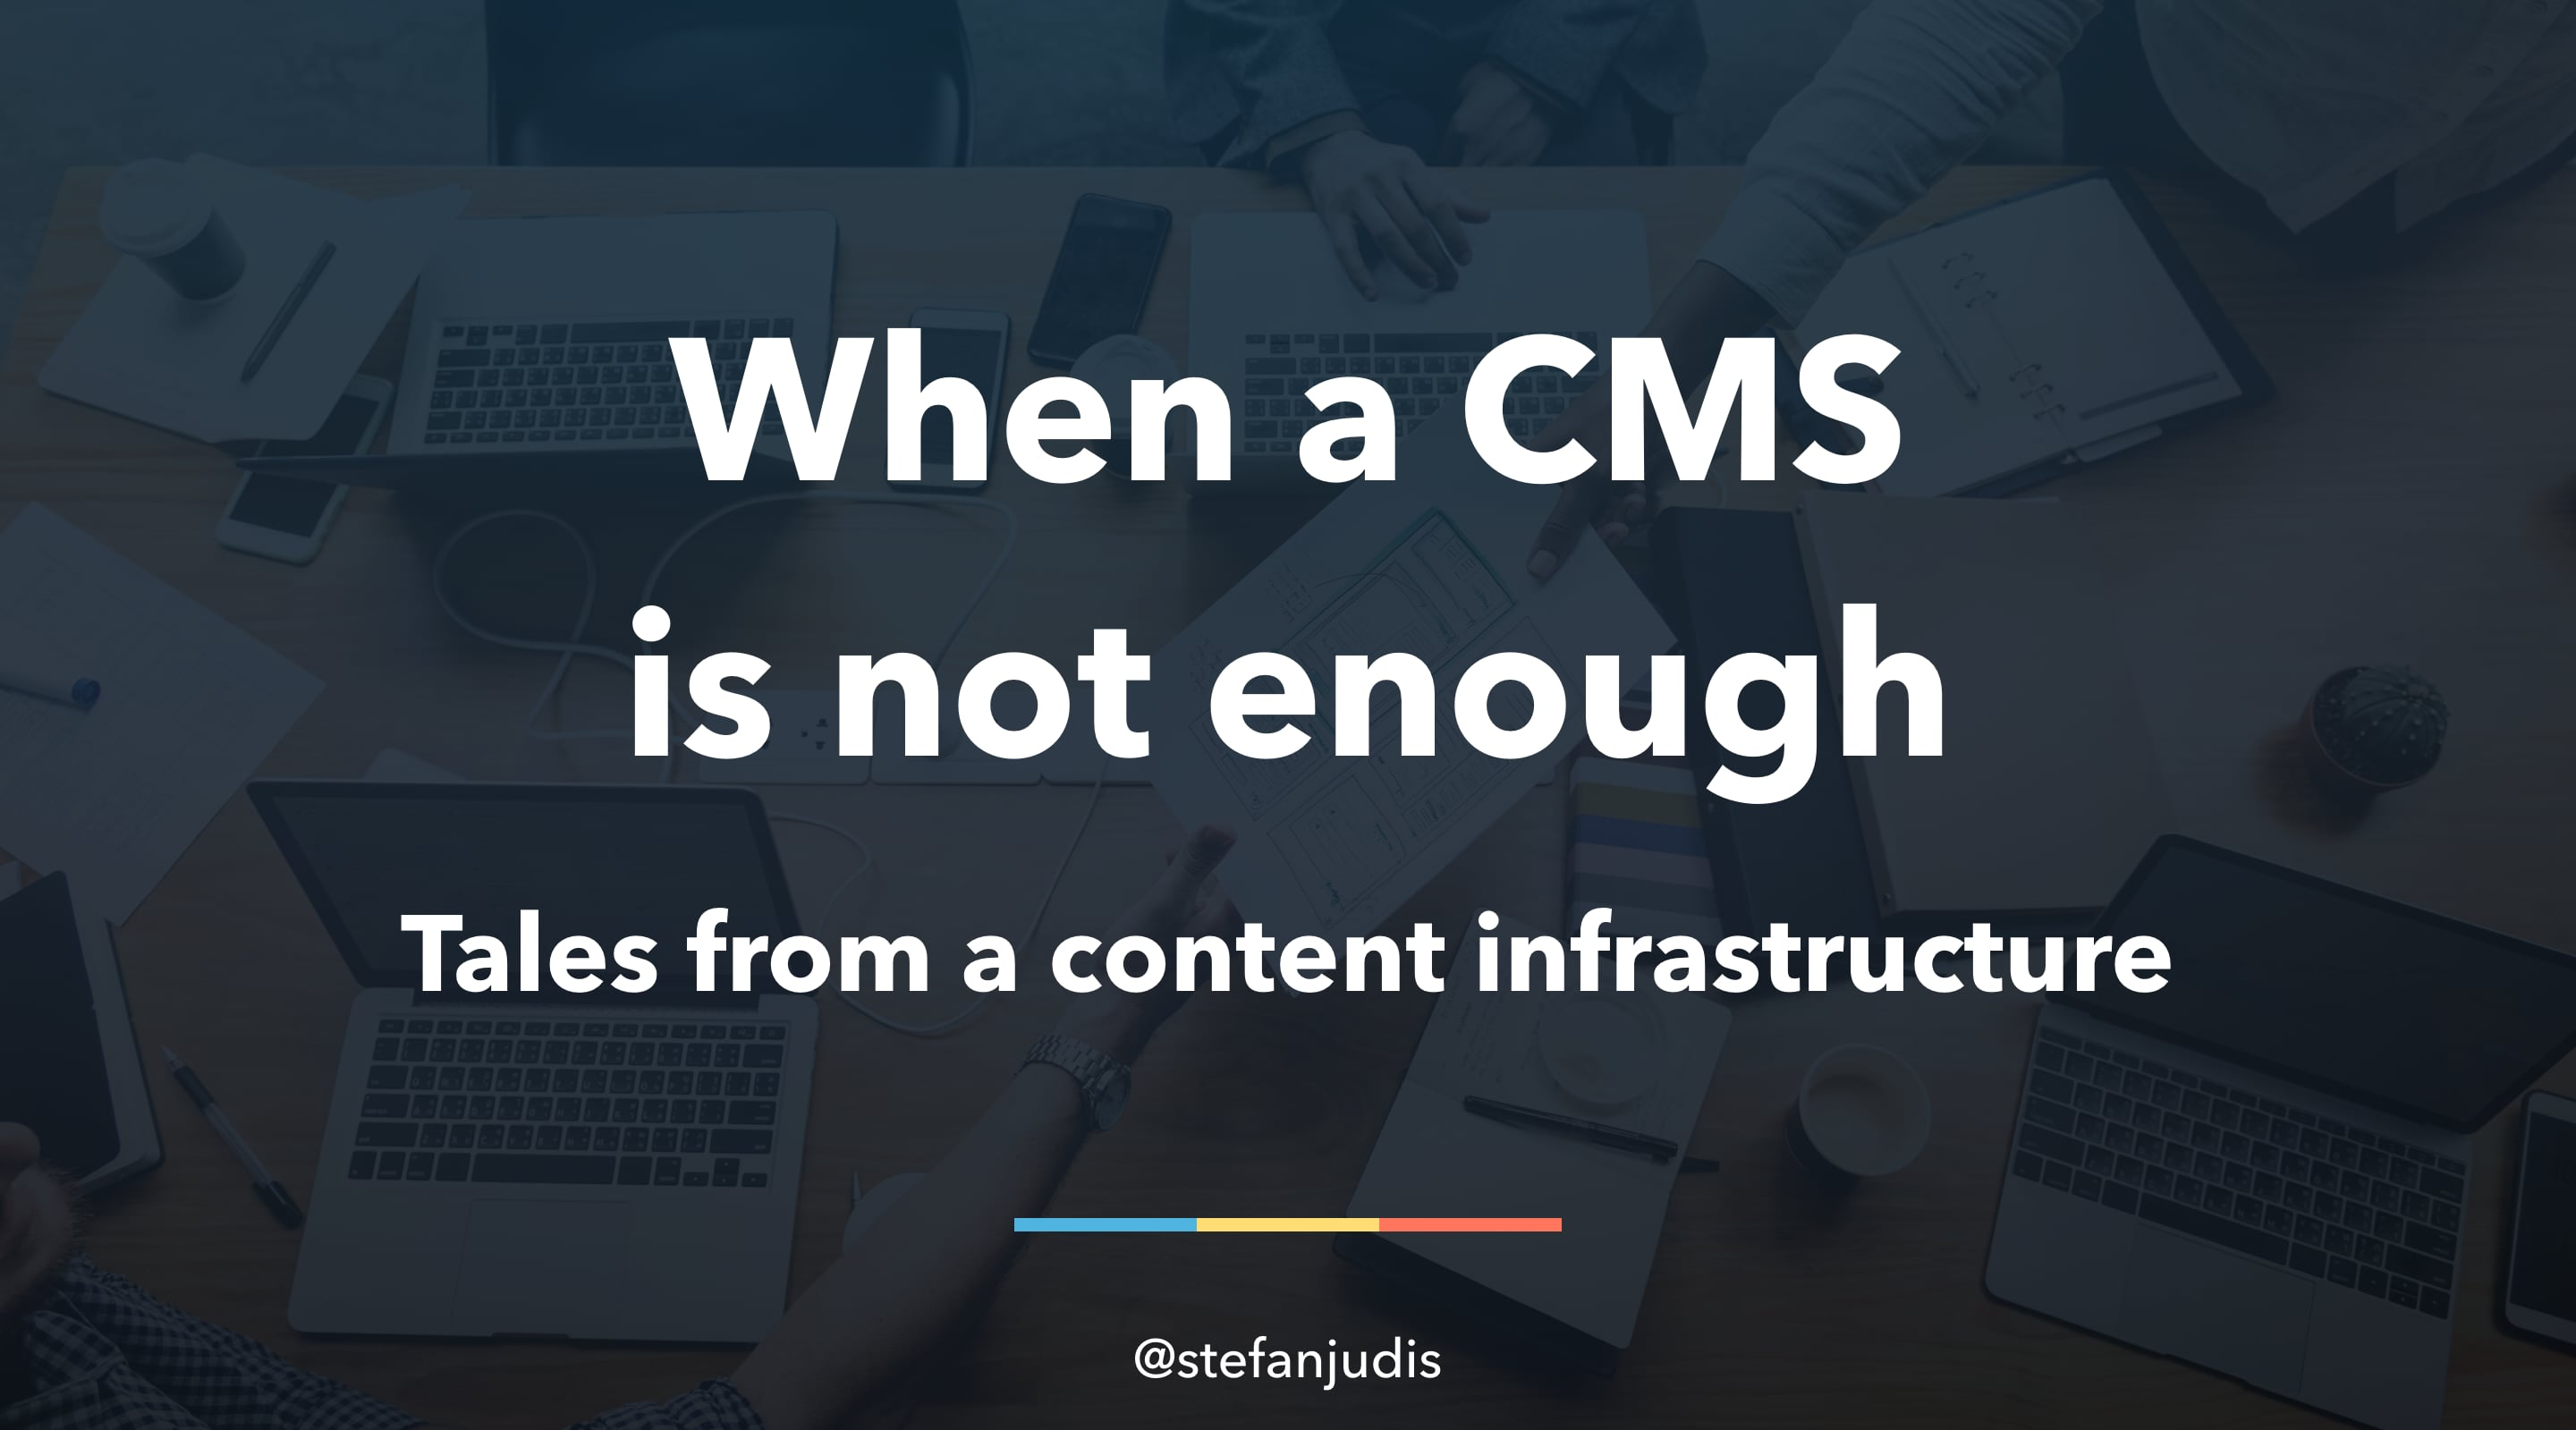 When a CMS is not enough – Tales from a content infrastructure